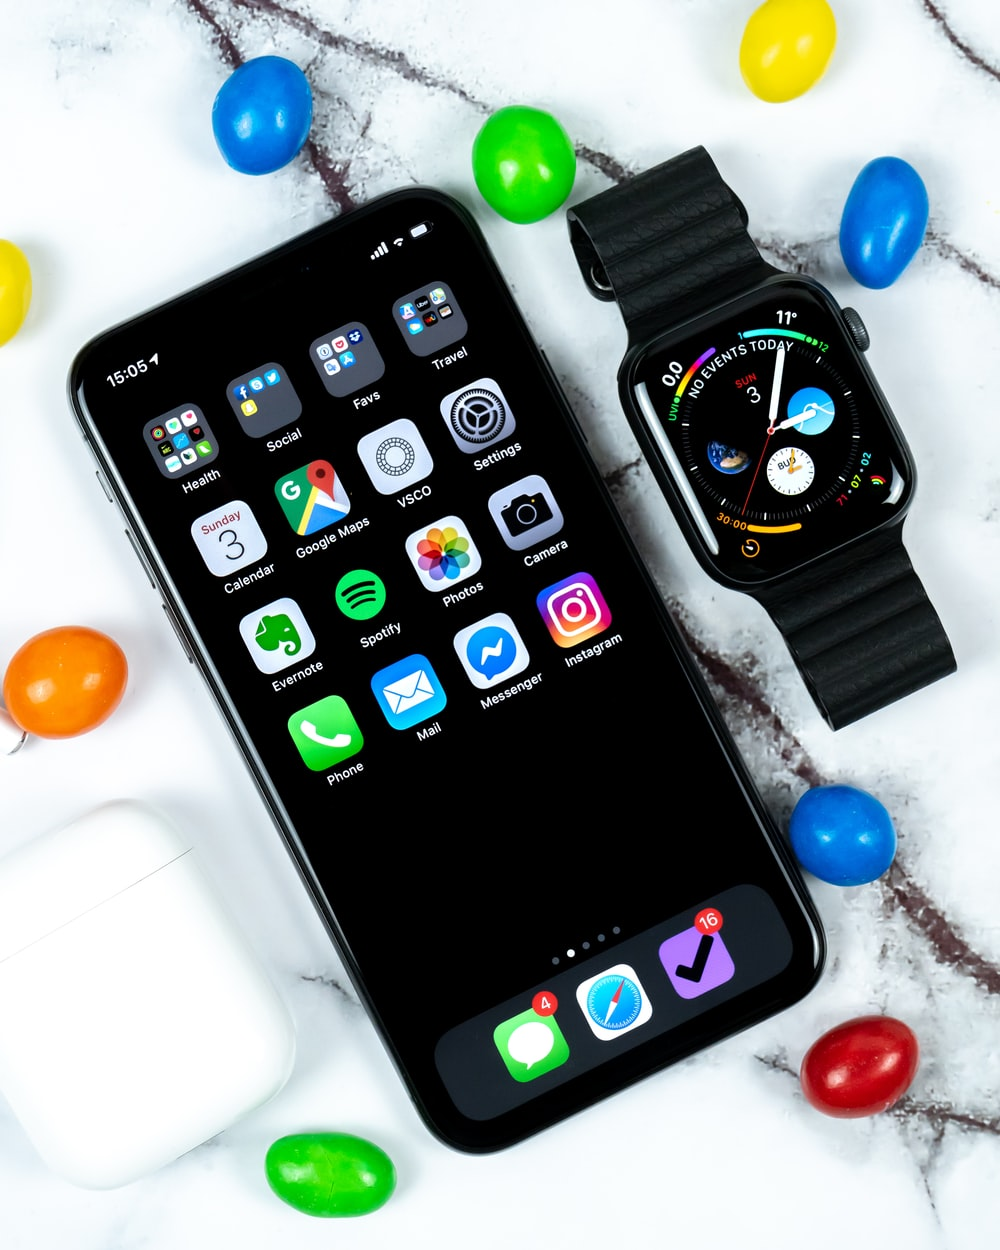 Apple watch beside iPhone